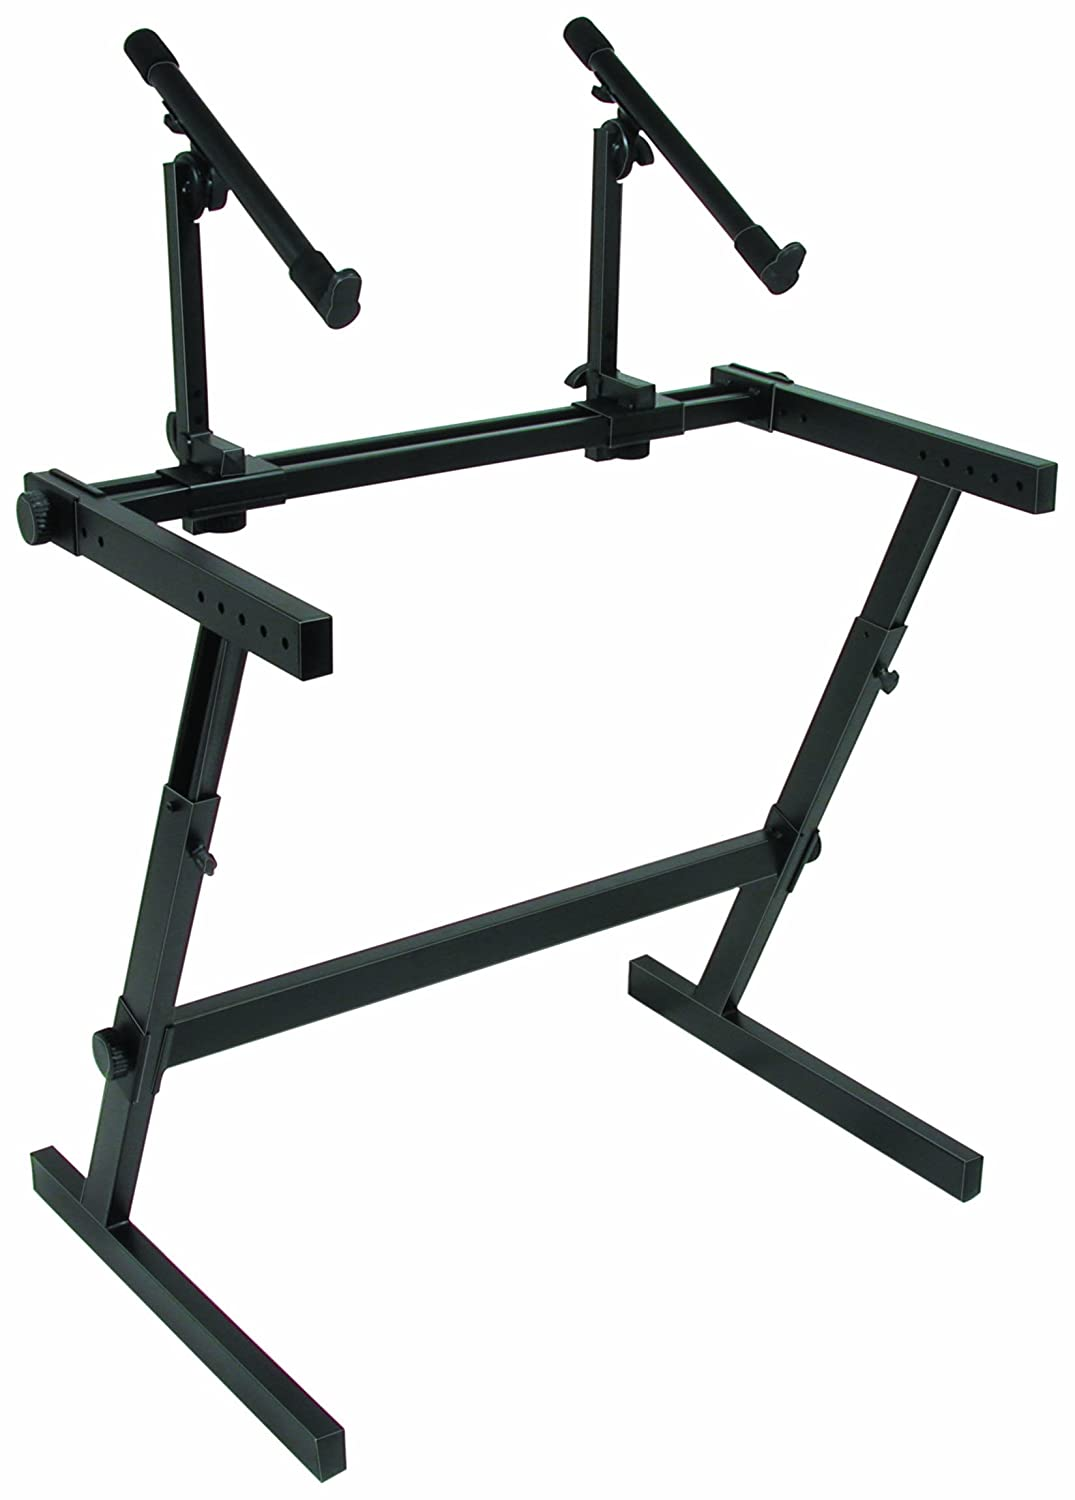 Quik Lok Z-726 Keyboard stands and displays KMC Music Inc